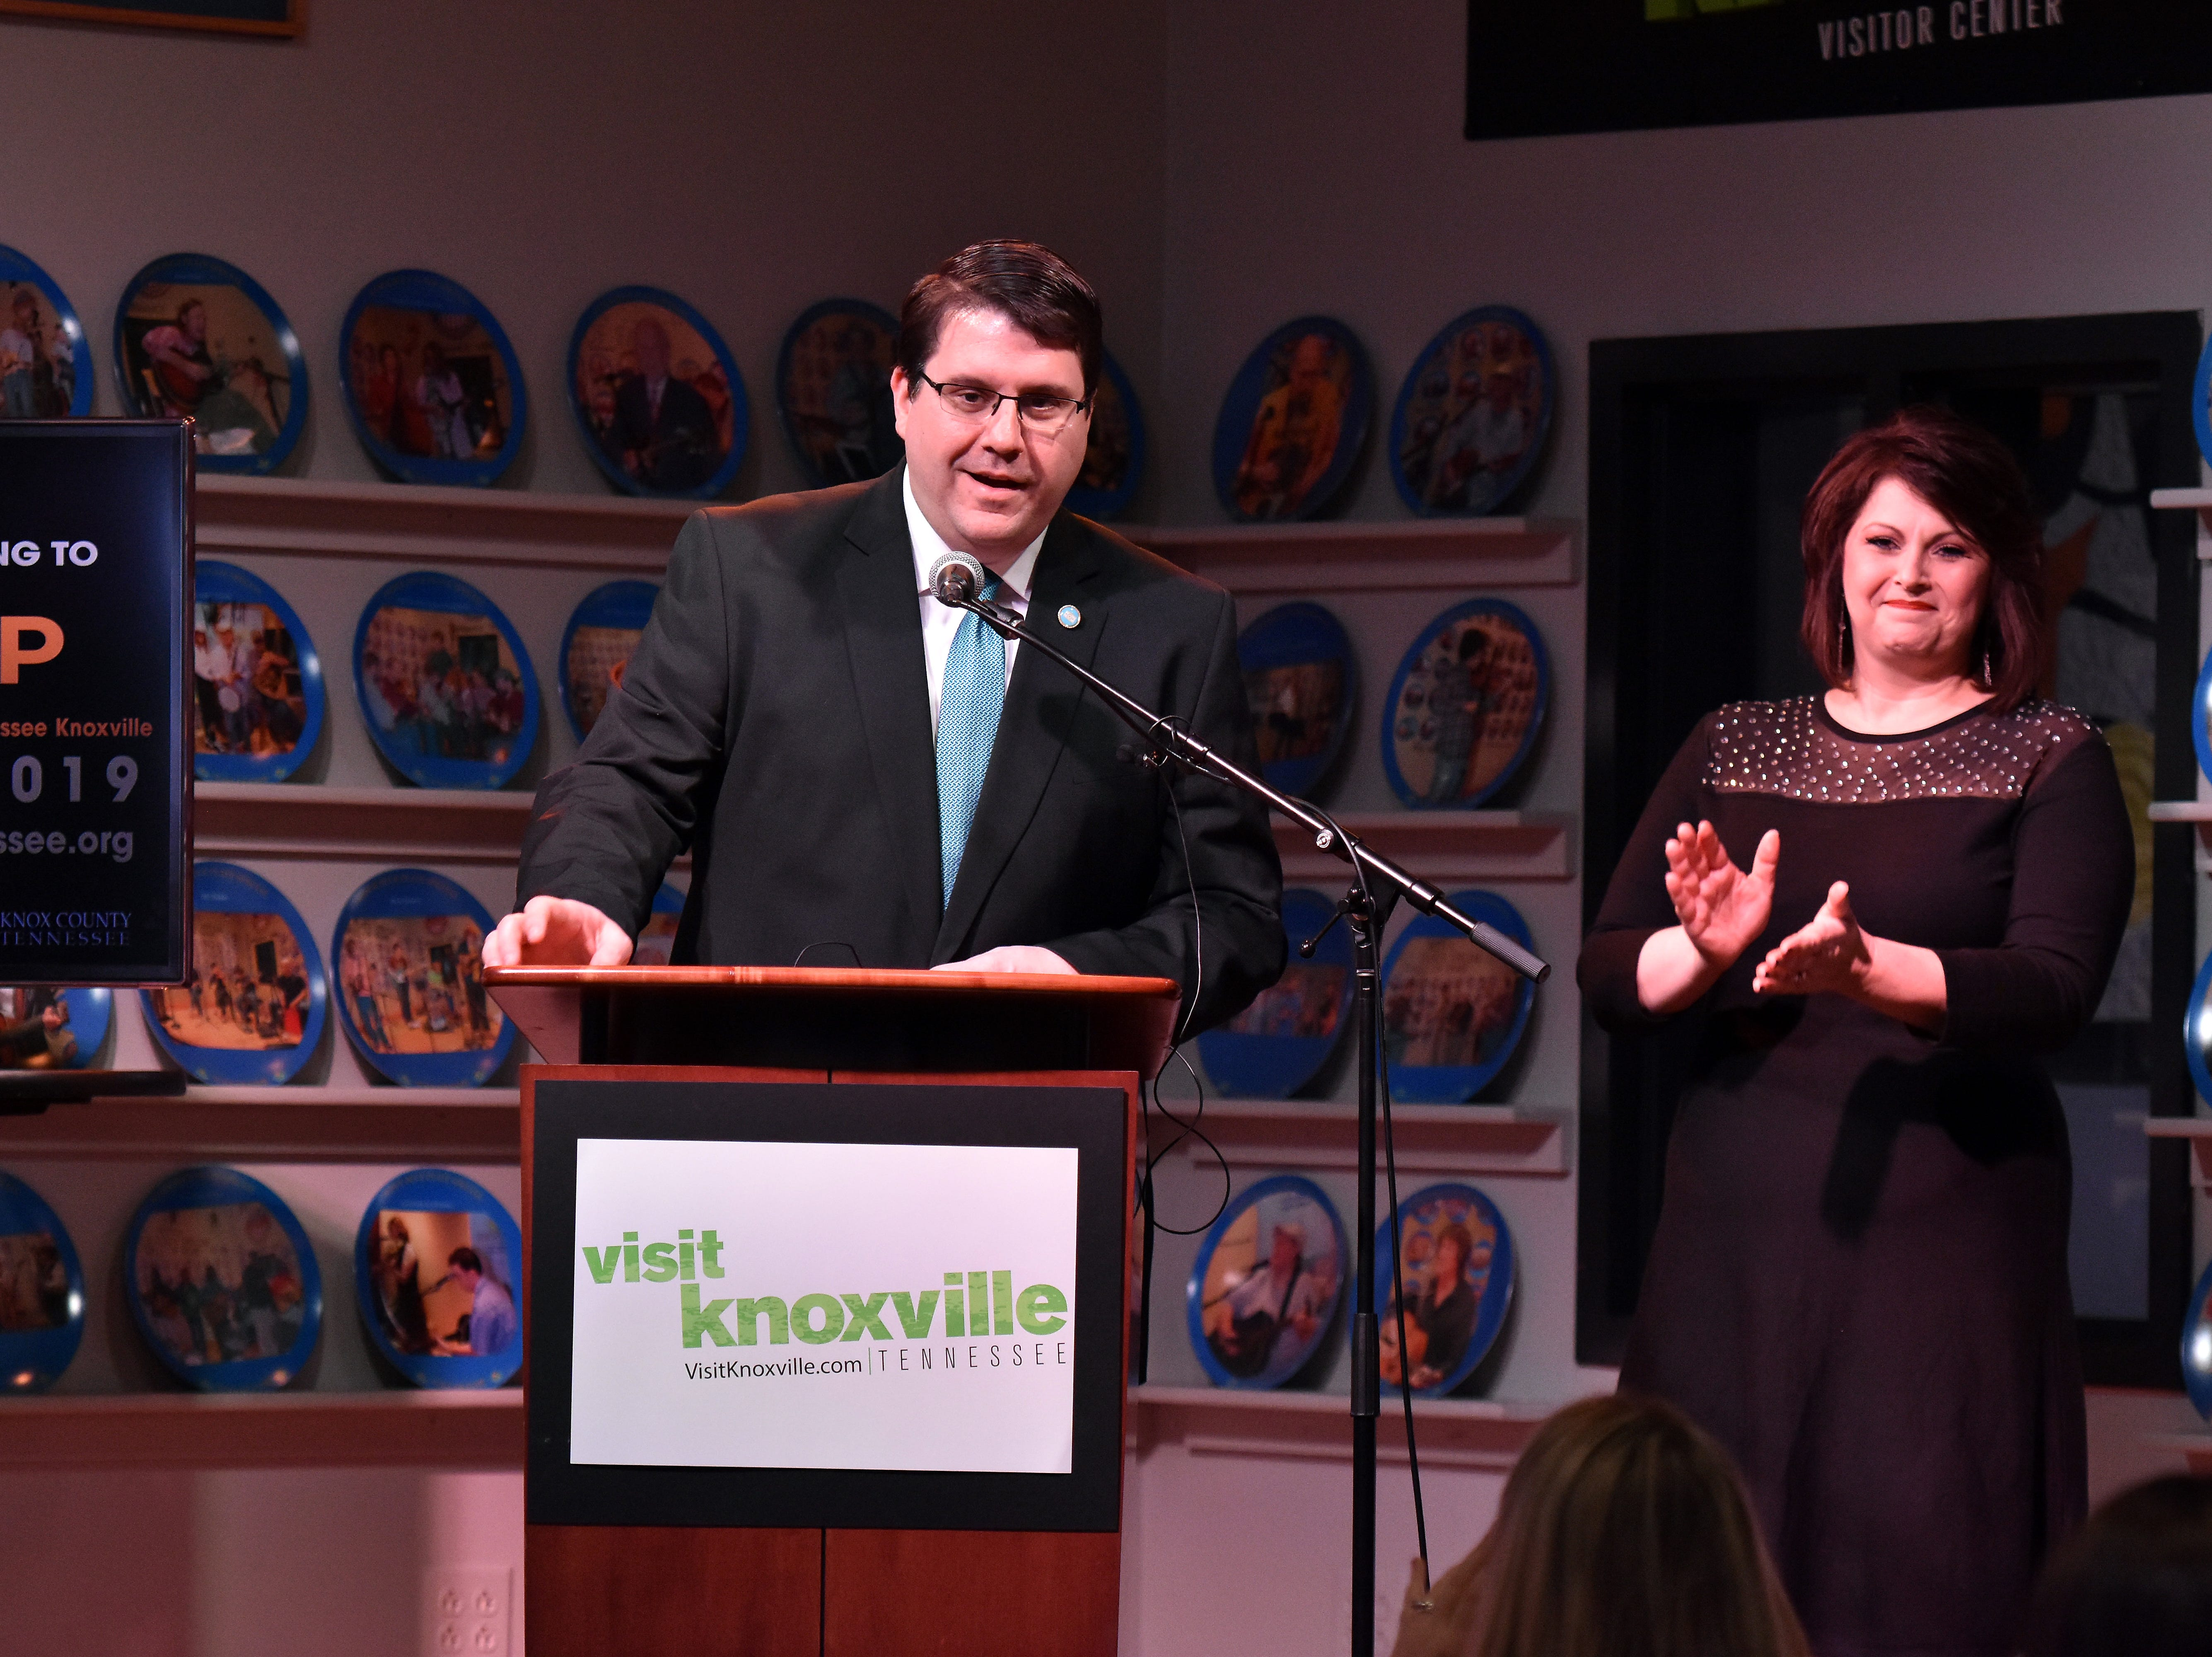 Eddie Smith, along with wife Lanna, make the announcement of the Miss Tennessee pageant moving to Knoxville, after more than 60 years in Jackson, Tn.